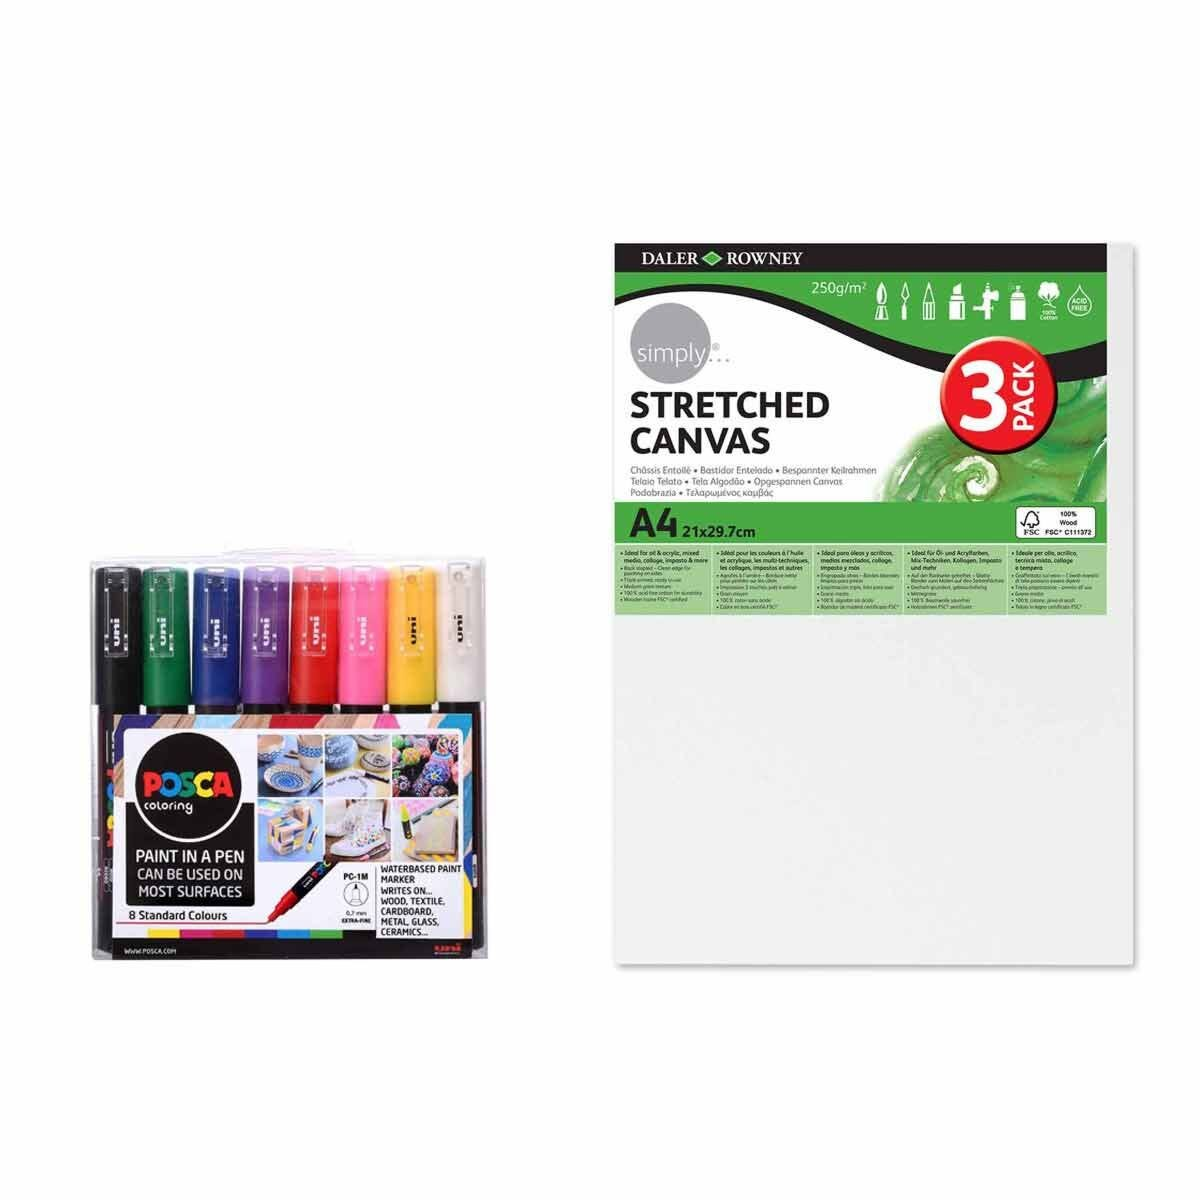 POSCA PC-1M 8 Piece Starter Pack with A4 Canvas Pack of 3